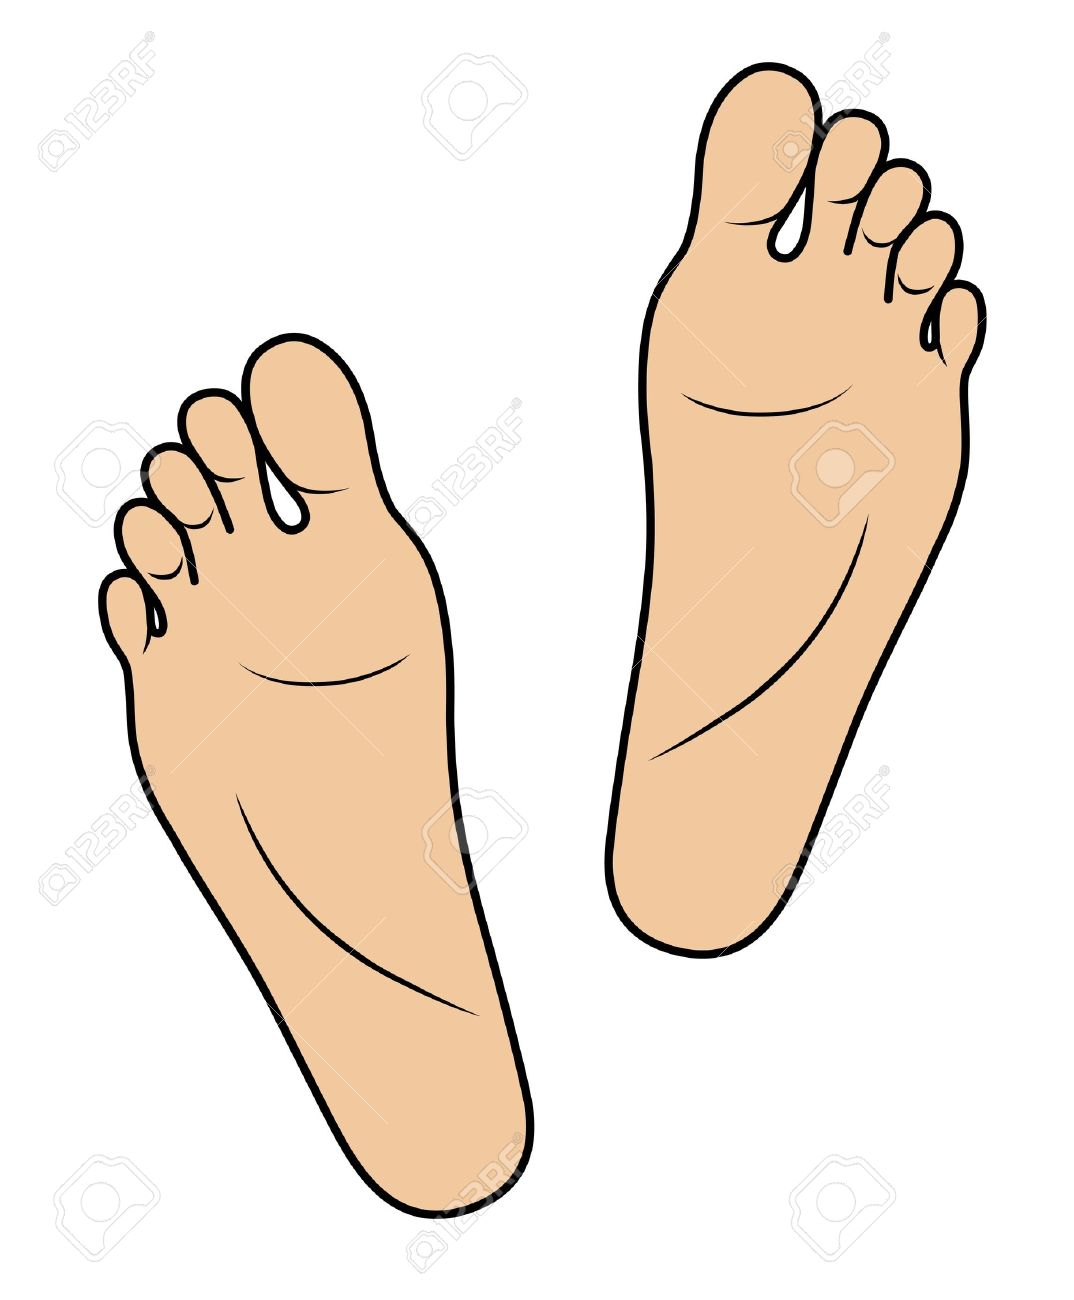 Feet clipart step Use Panda Clip To Foot